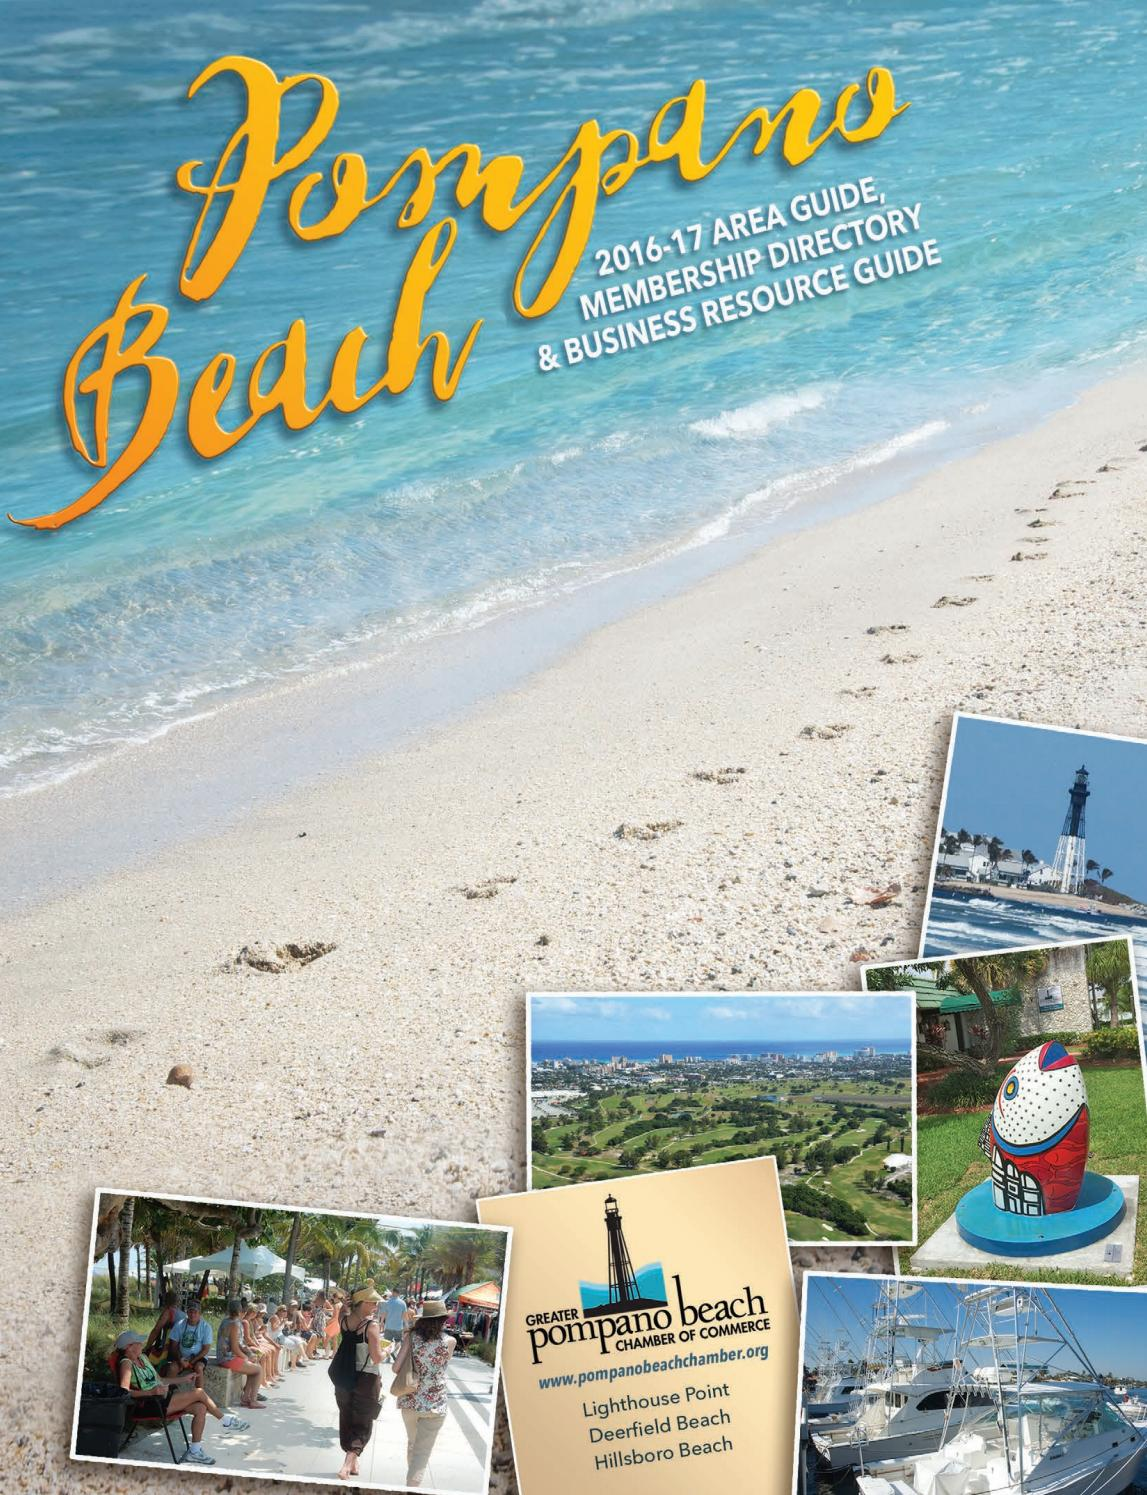 pompano beach, fl membership directory & business resource guide